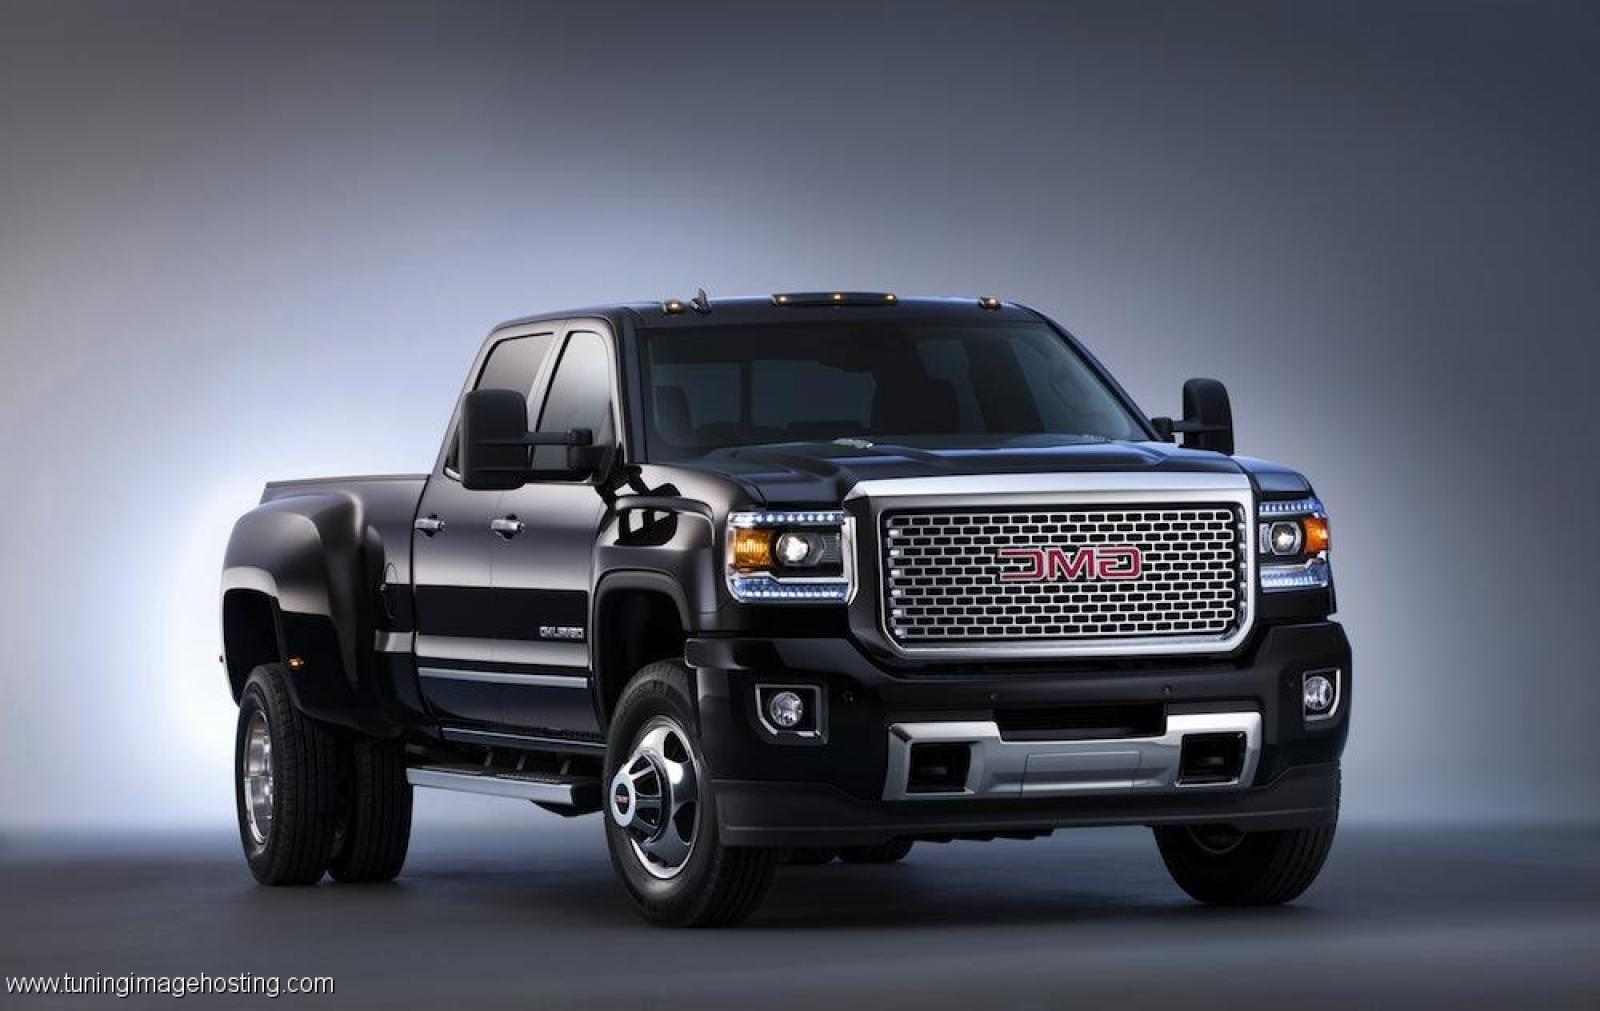 2015 gmc sierra 3500hd information and photos zombiedrive. Black Bedroom Furniture Sets. Home Design Ideas